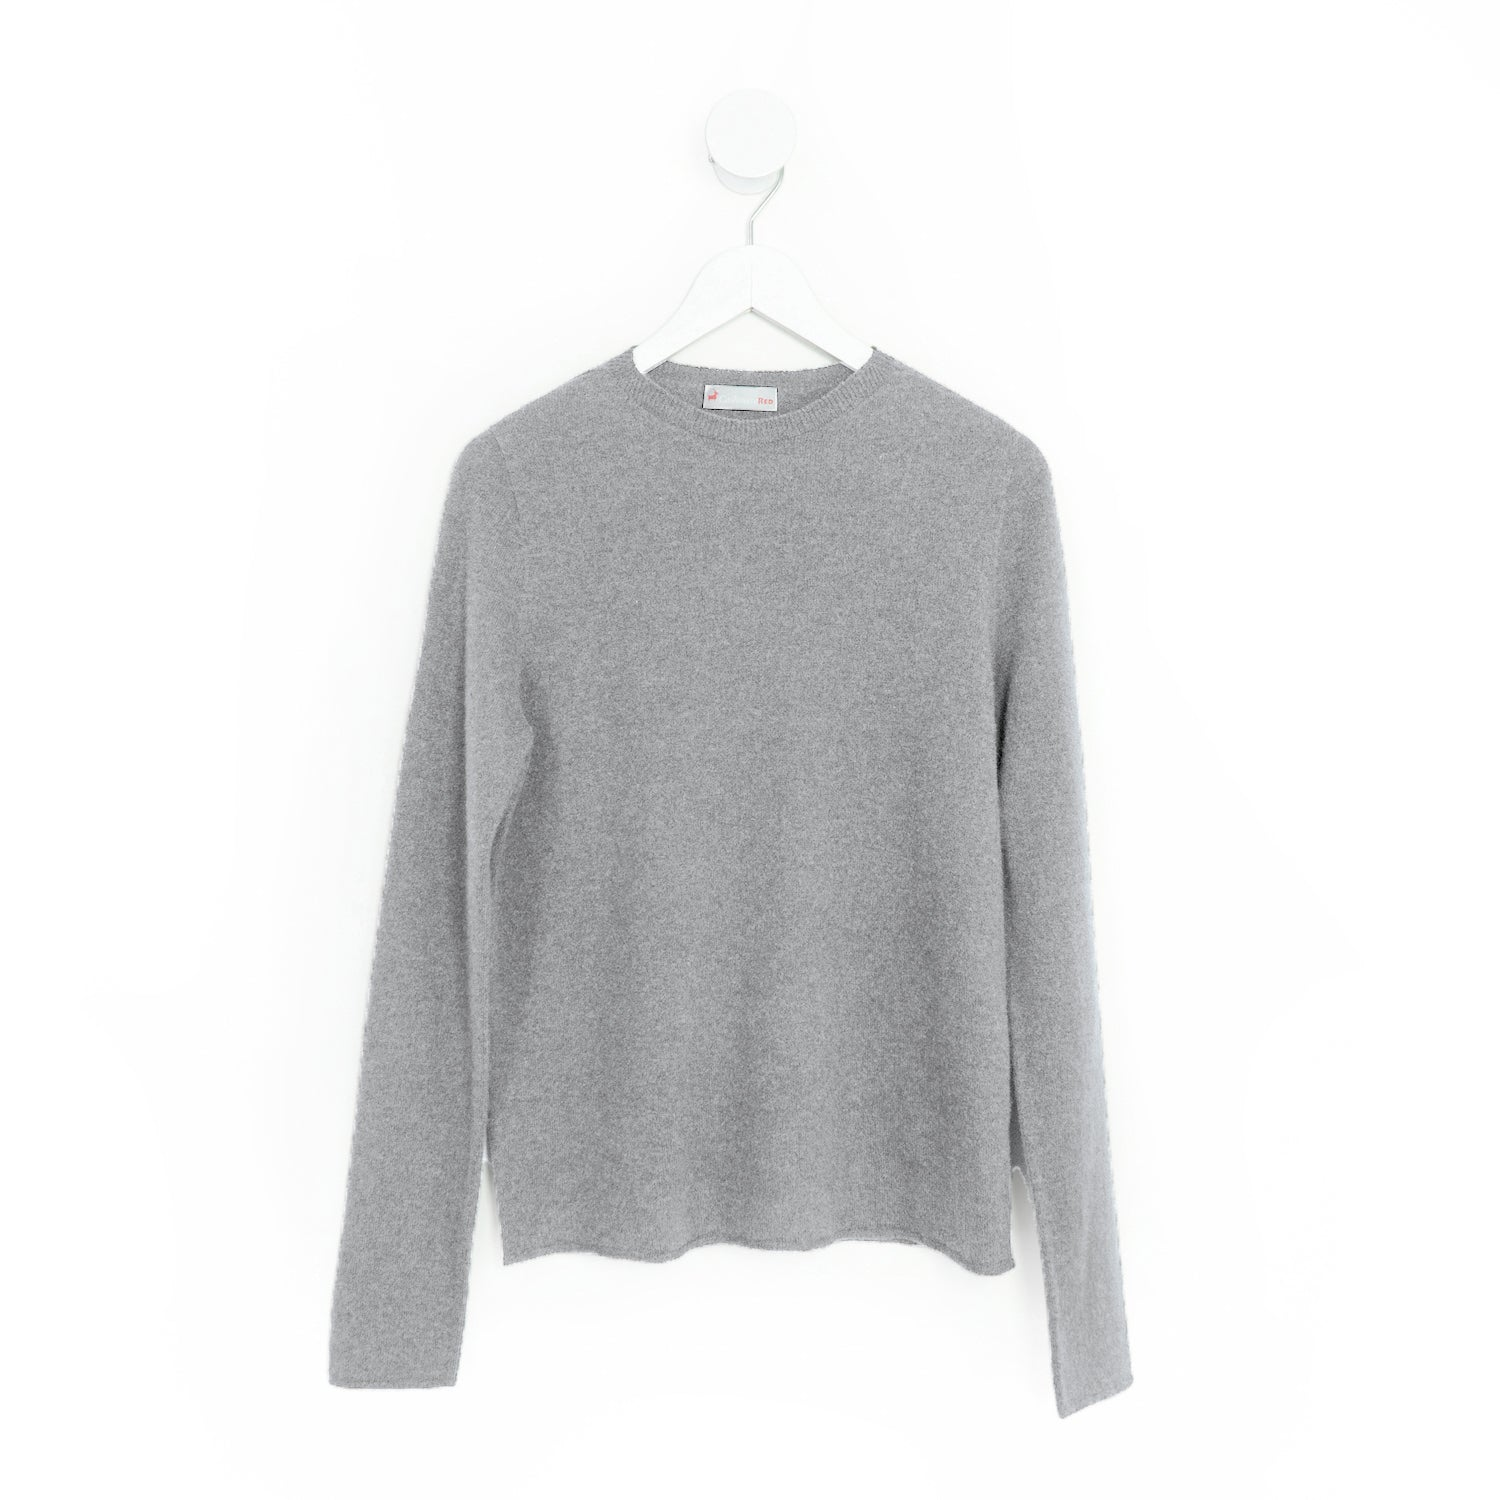 Knit To Order All-Gender Easton Crew Neck Cashmere Sweater